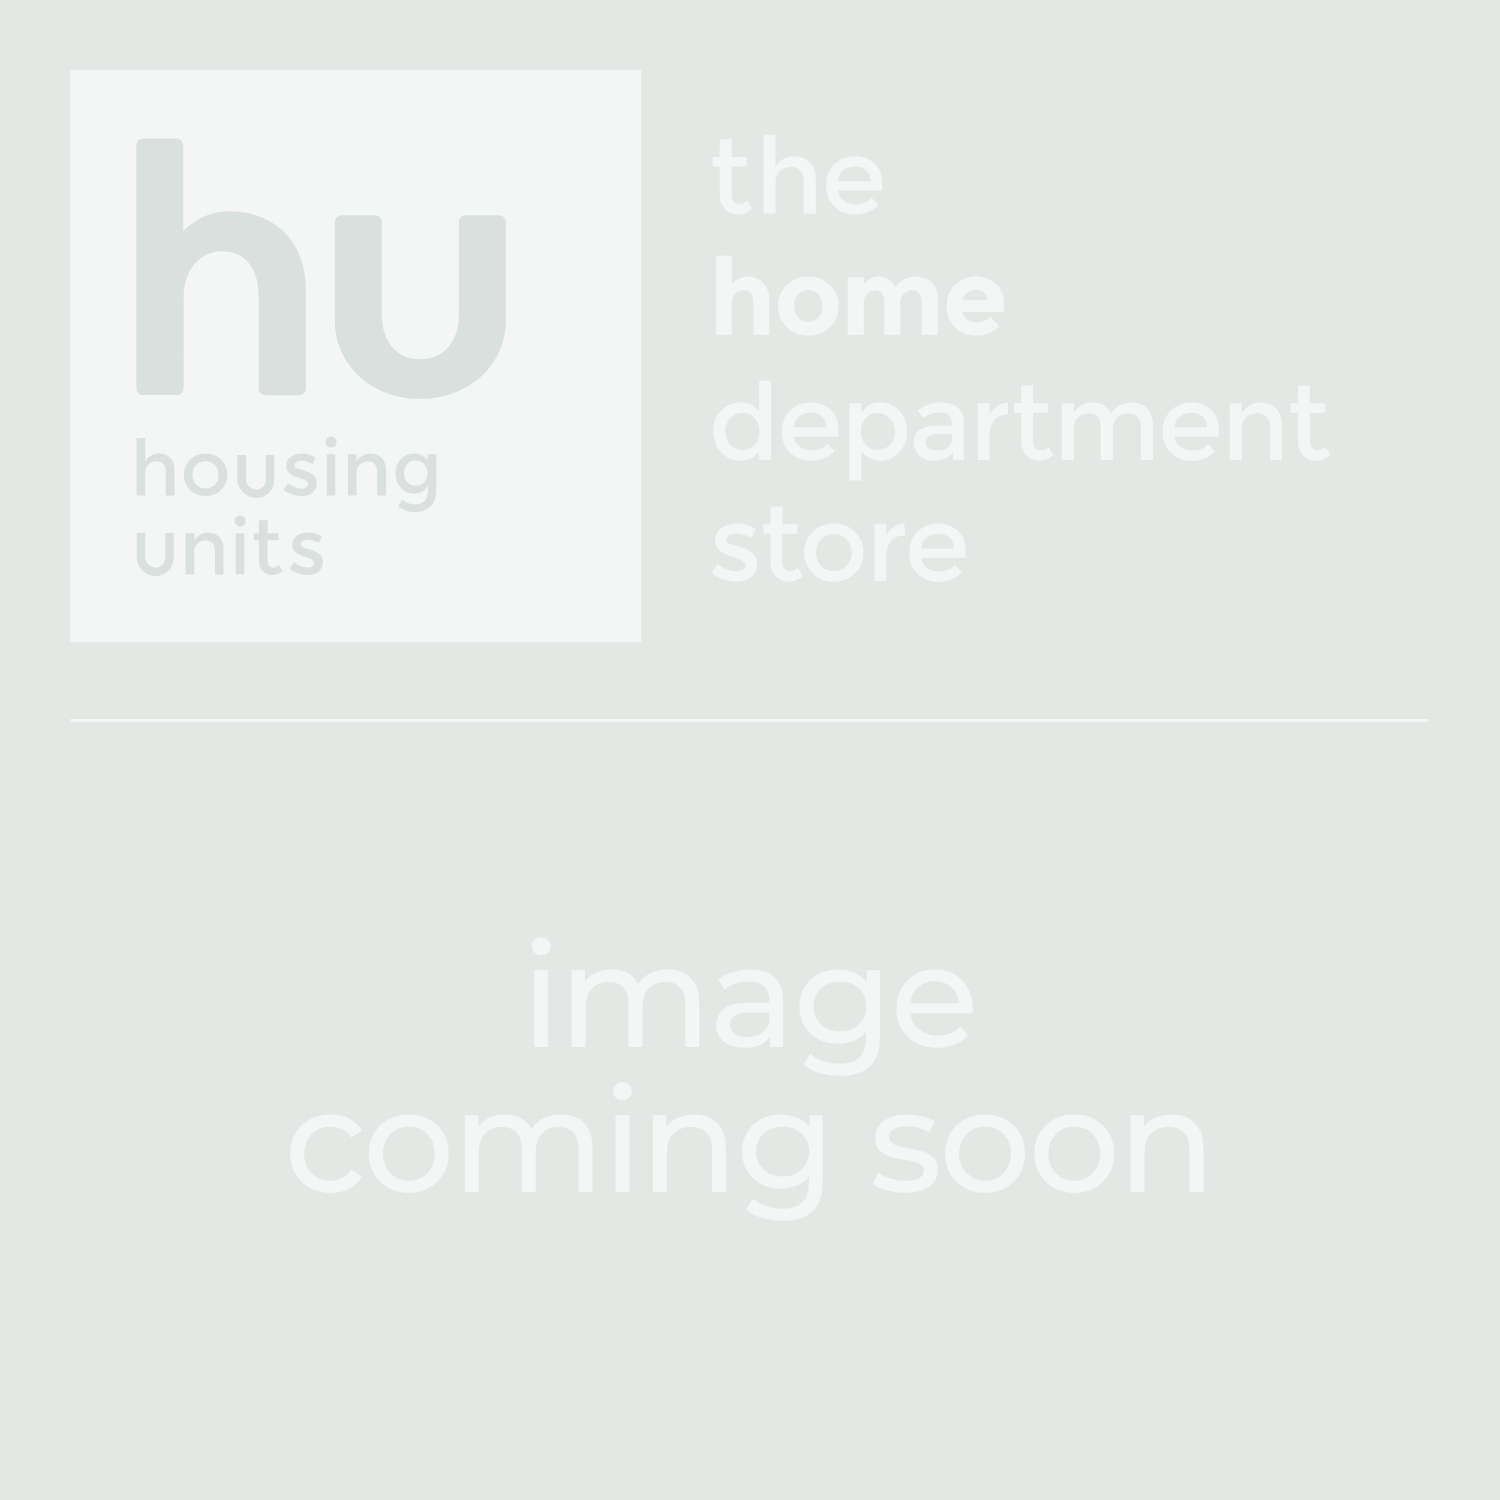 Celine Crystal & Gold 4 Light Pendant | Housing Units